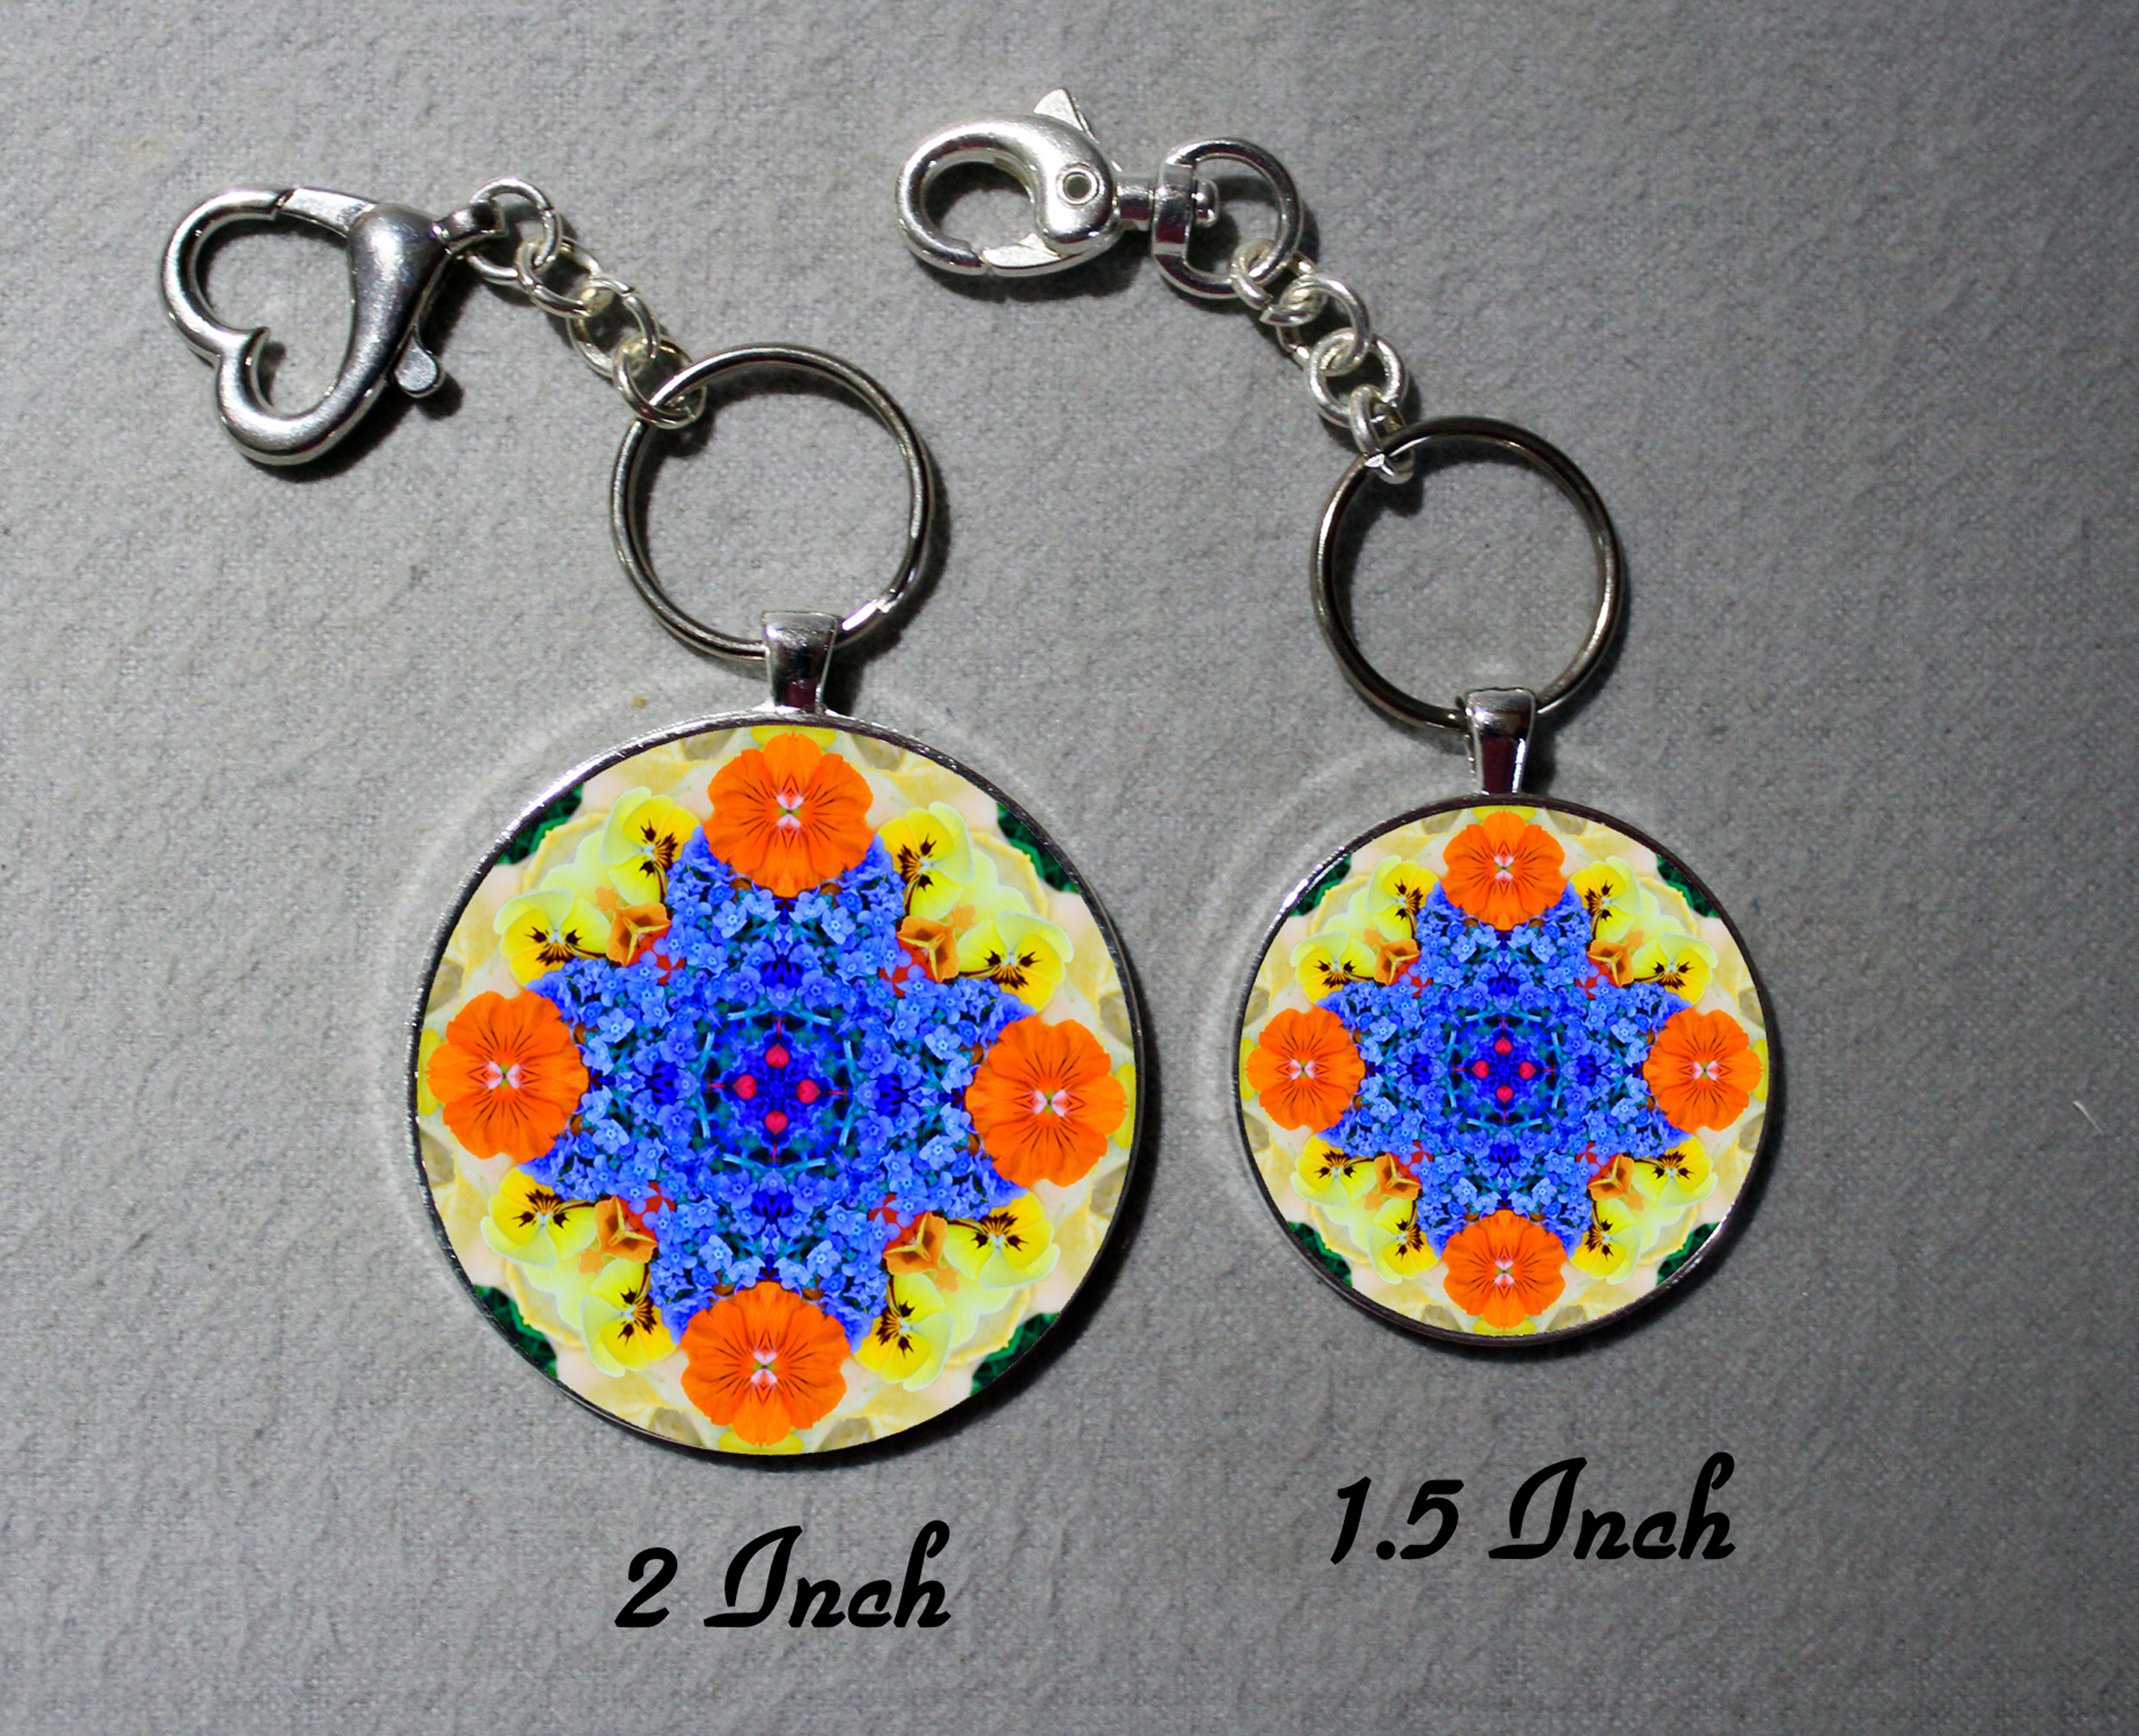 Key Chain Forget Me Not Mandala Purse Charm Bag Charm Unique Gift Tender Tribute